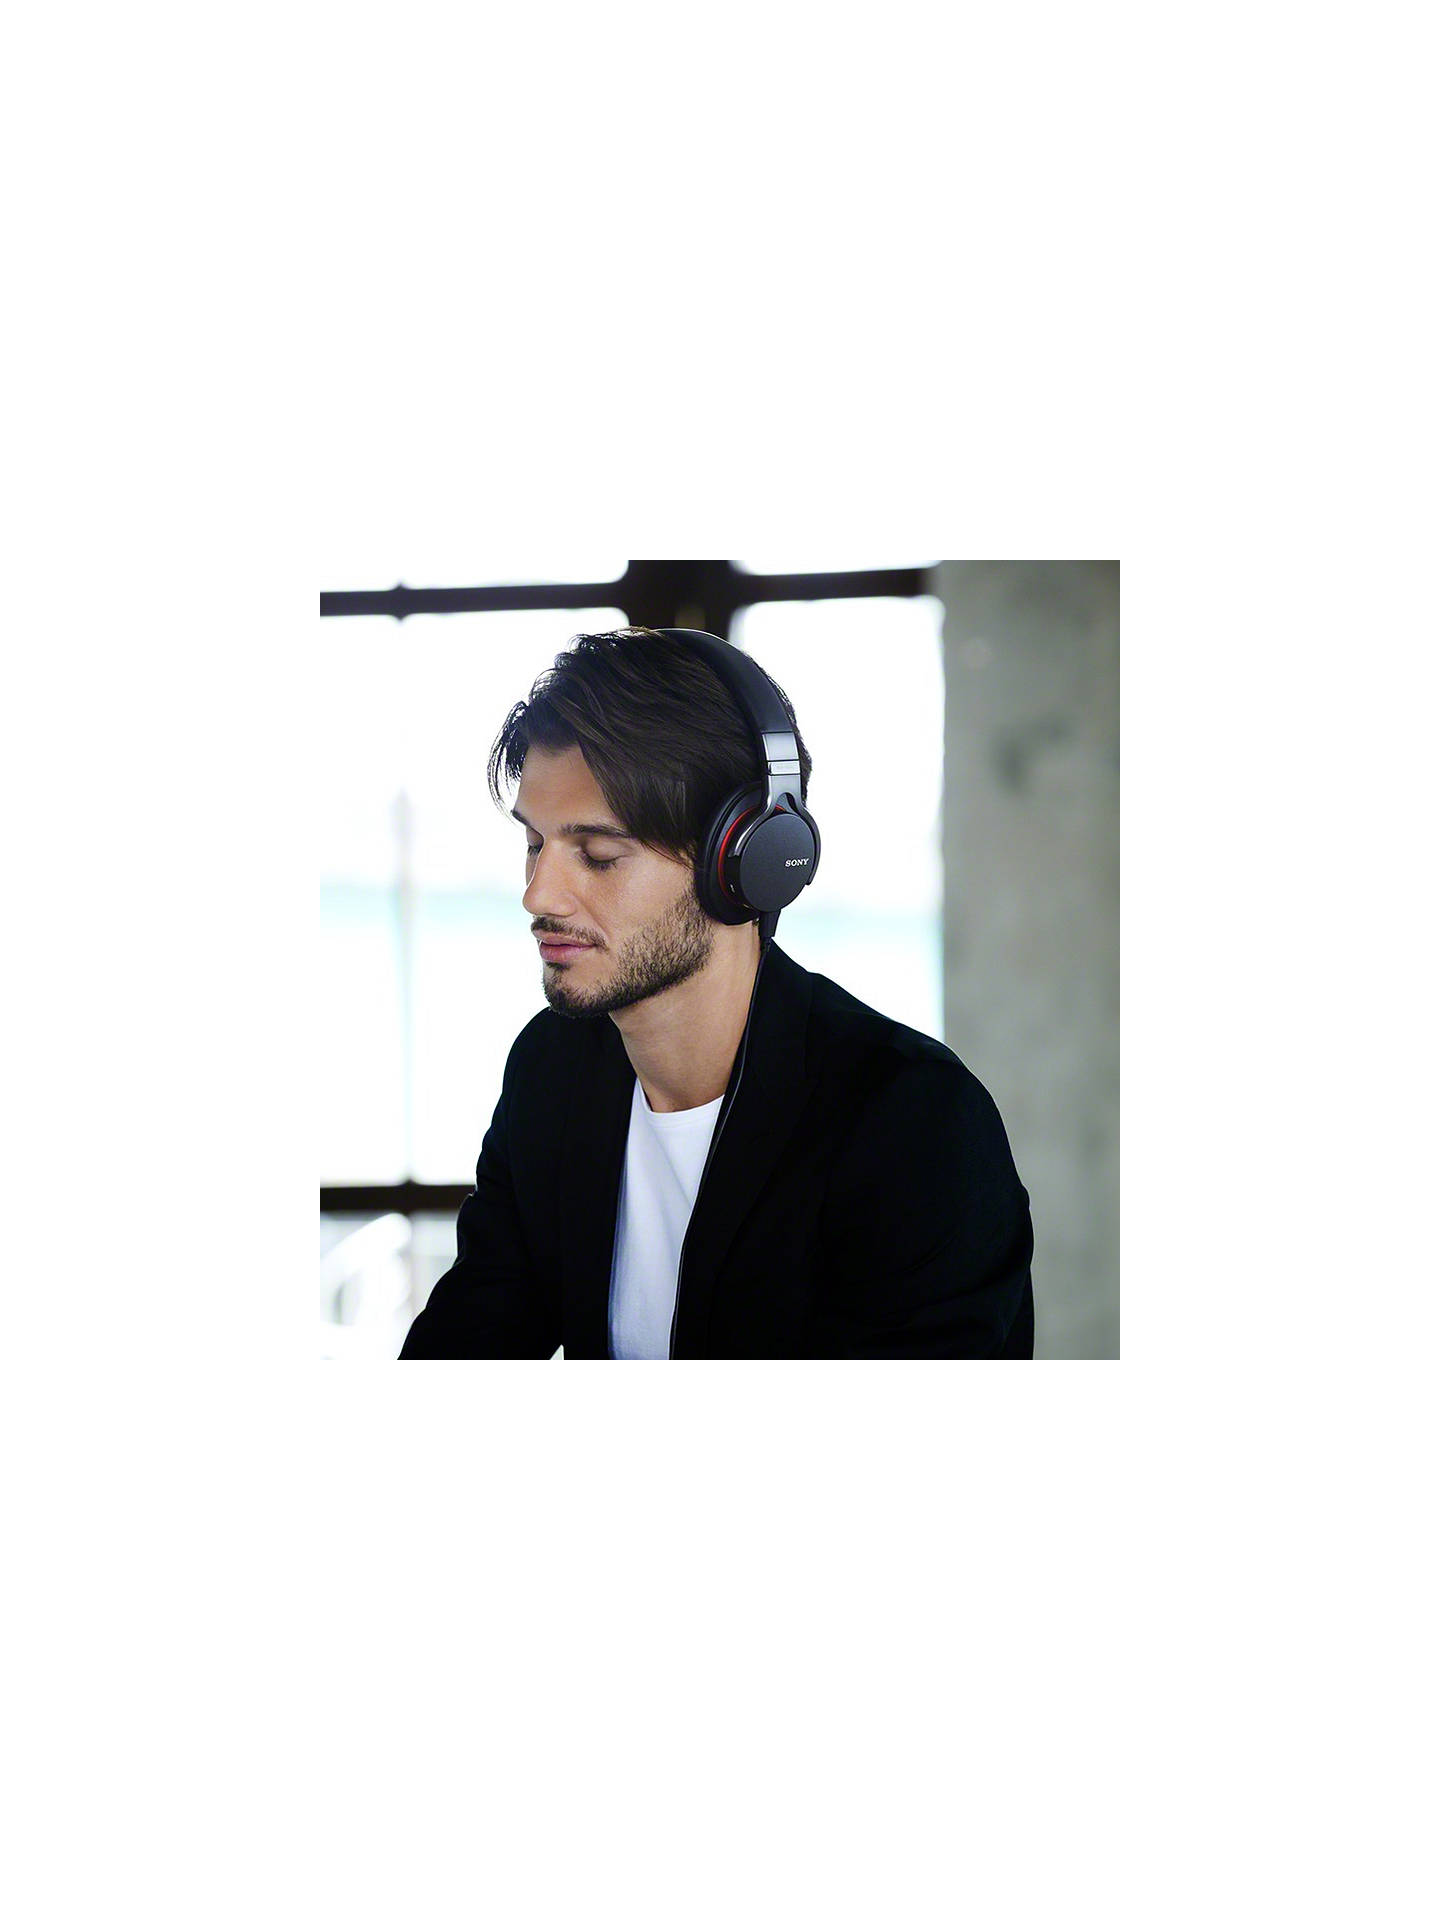 BuySony MDR1ADAC Full Size Headphones with Built-In USB DAC Amplifier, Black- Online at johnlewis.com